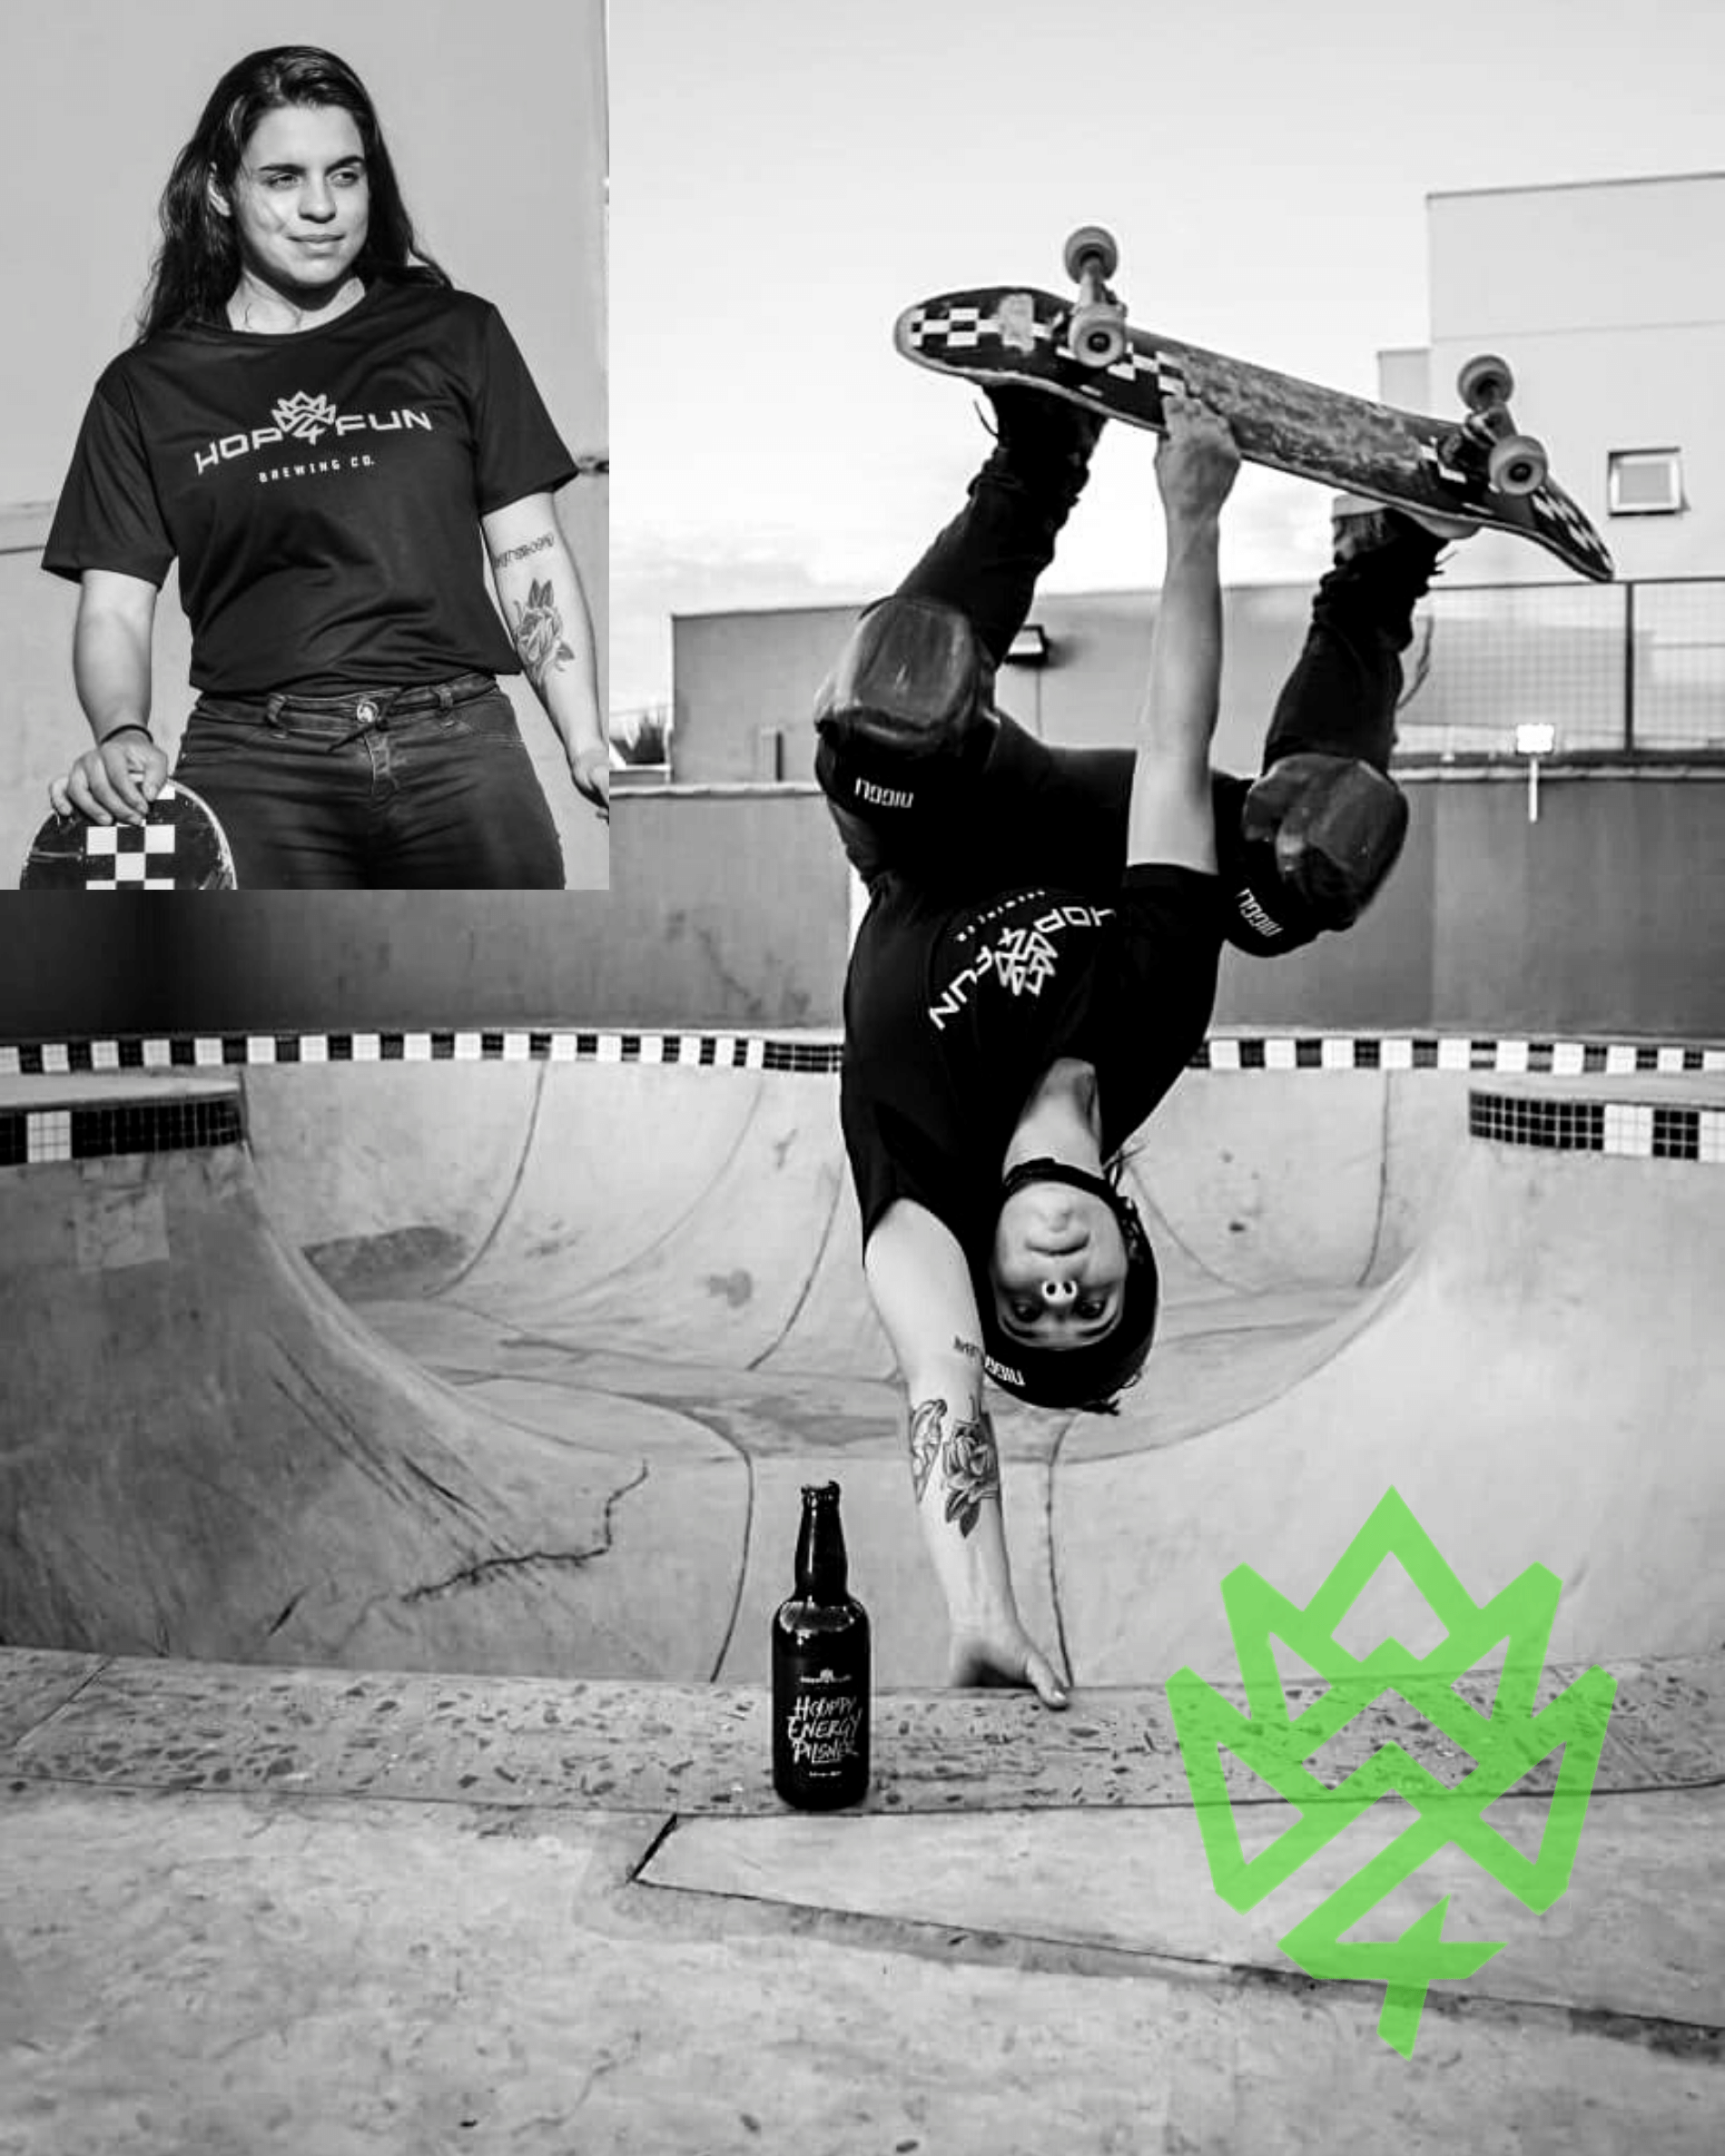 Julia Ventura skate team hop for-fun